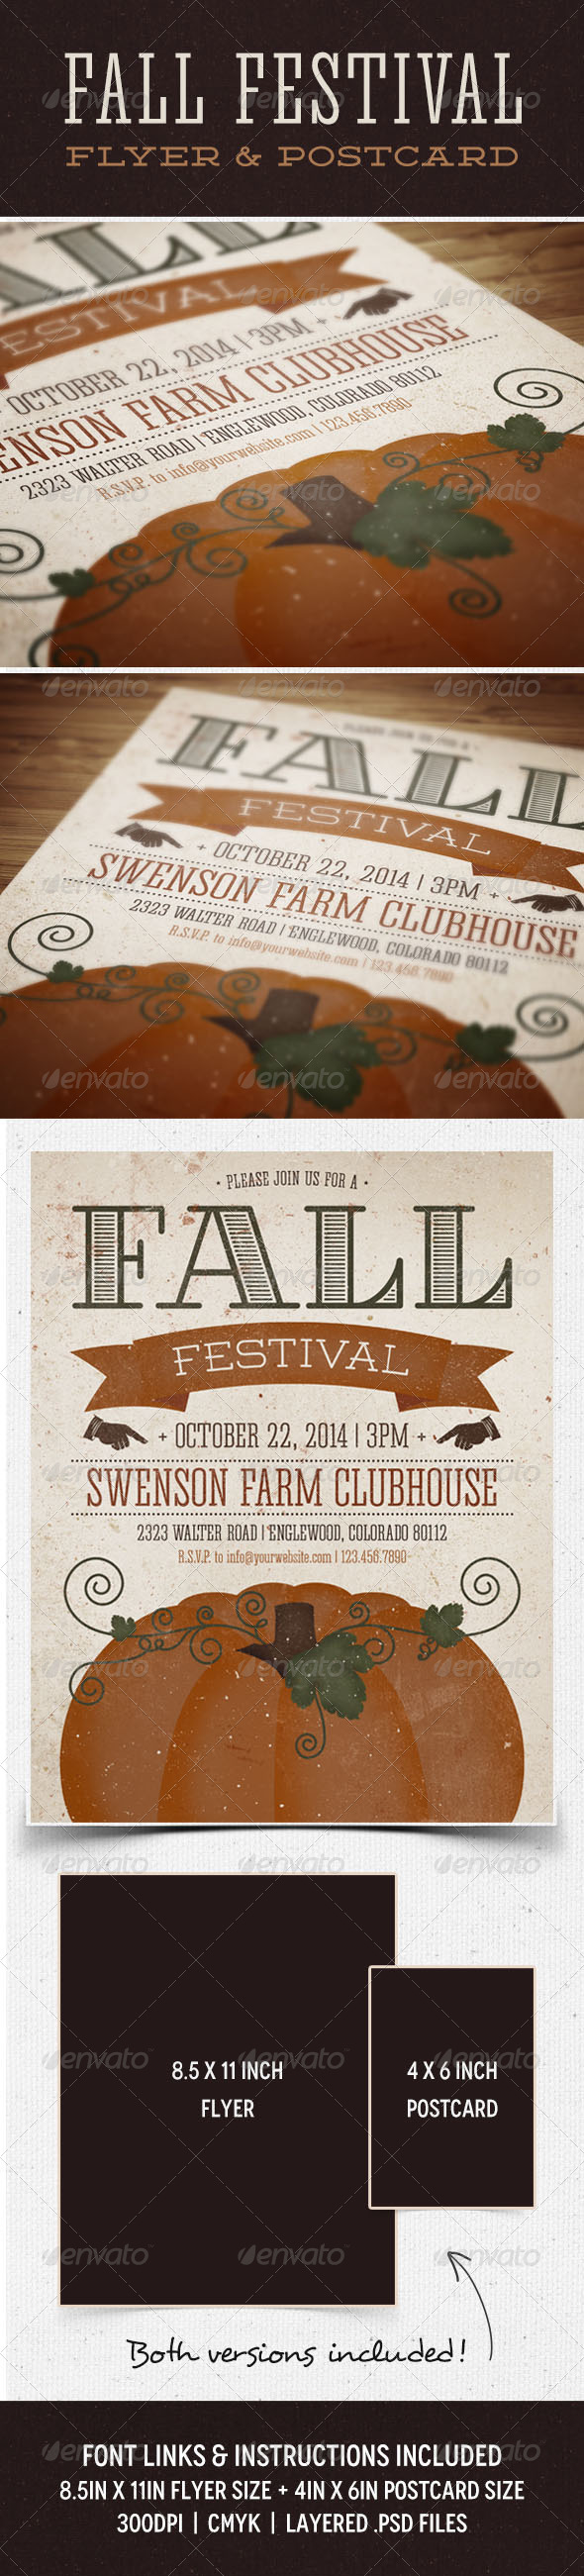 Fall Festival Flyer & Postcard - Events Flyers